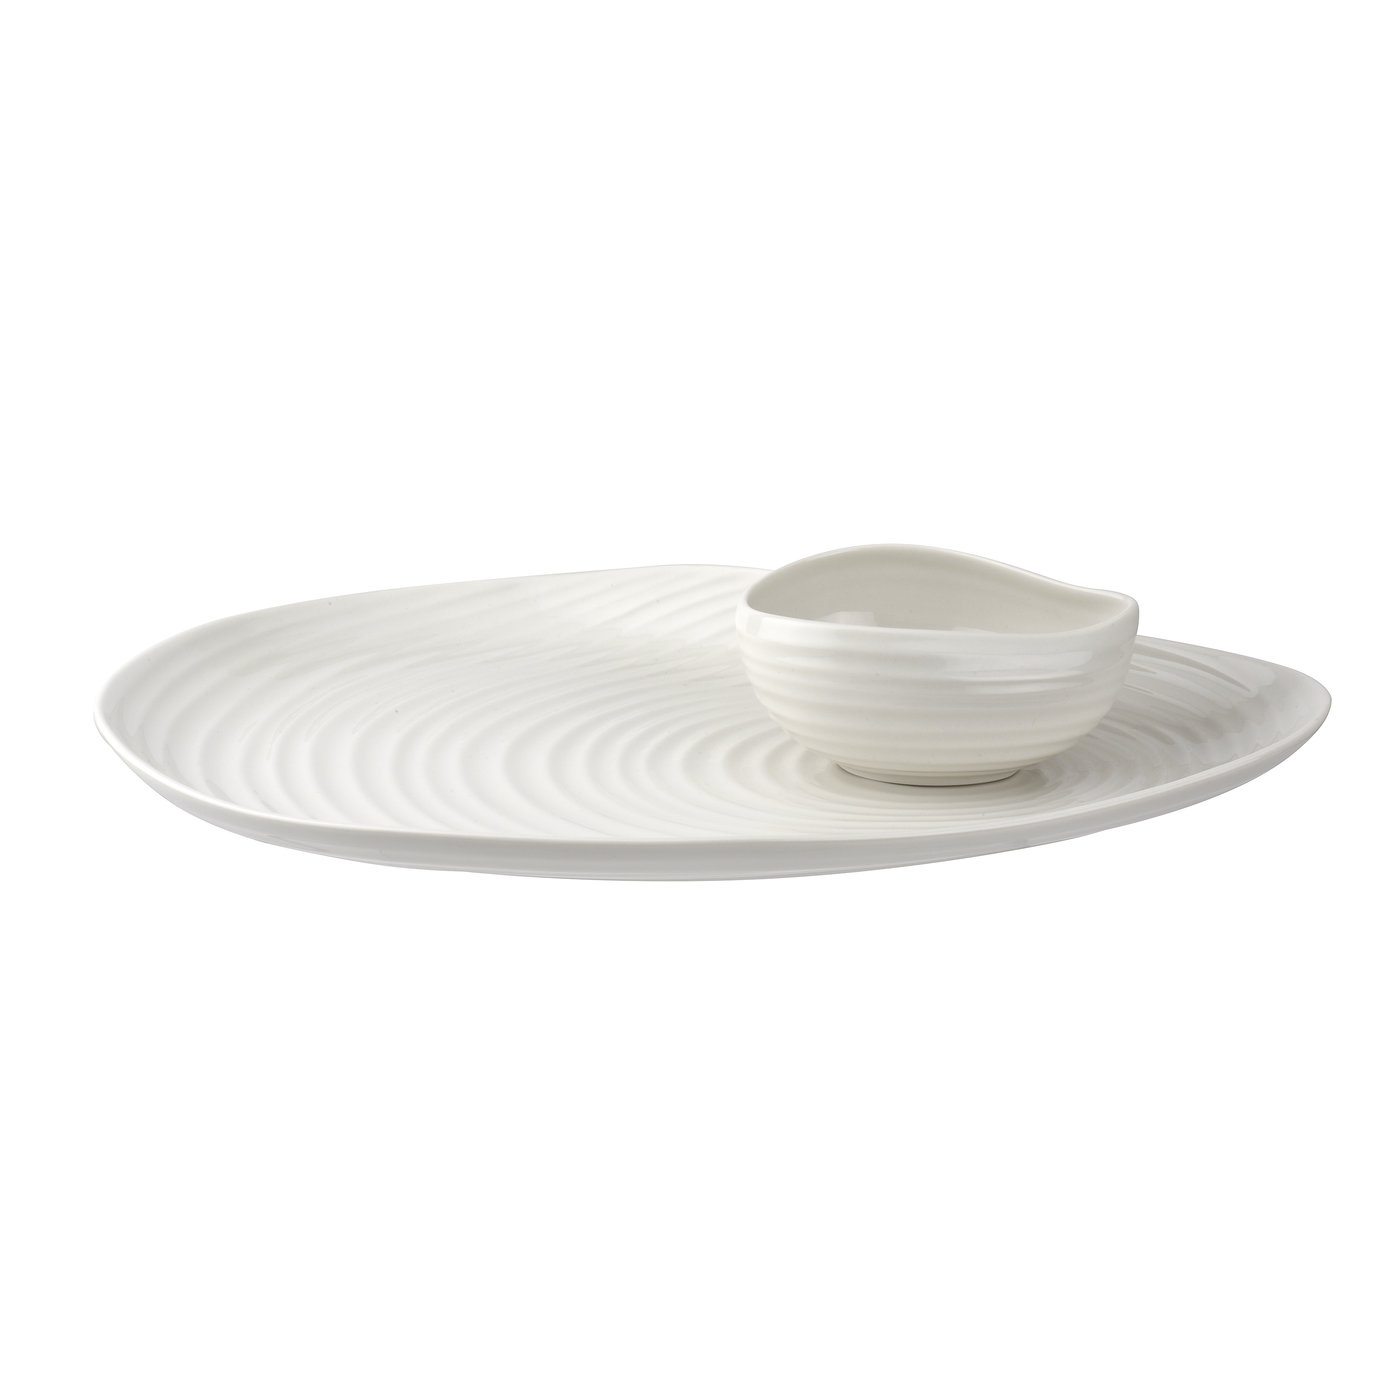 Sophie Conran for Portmeirion Shell Shaped Serving Plate and Bowl Set image number 0